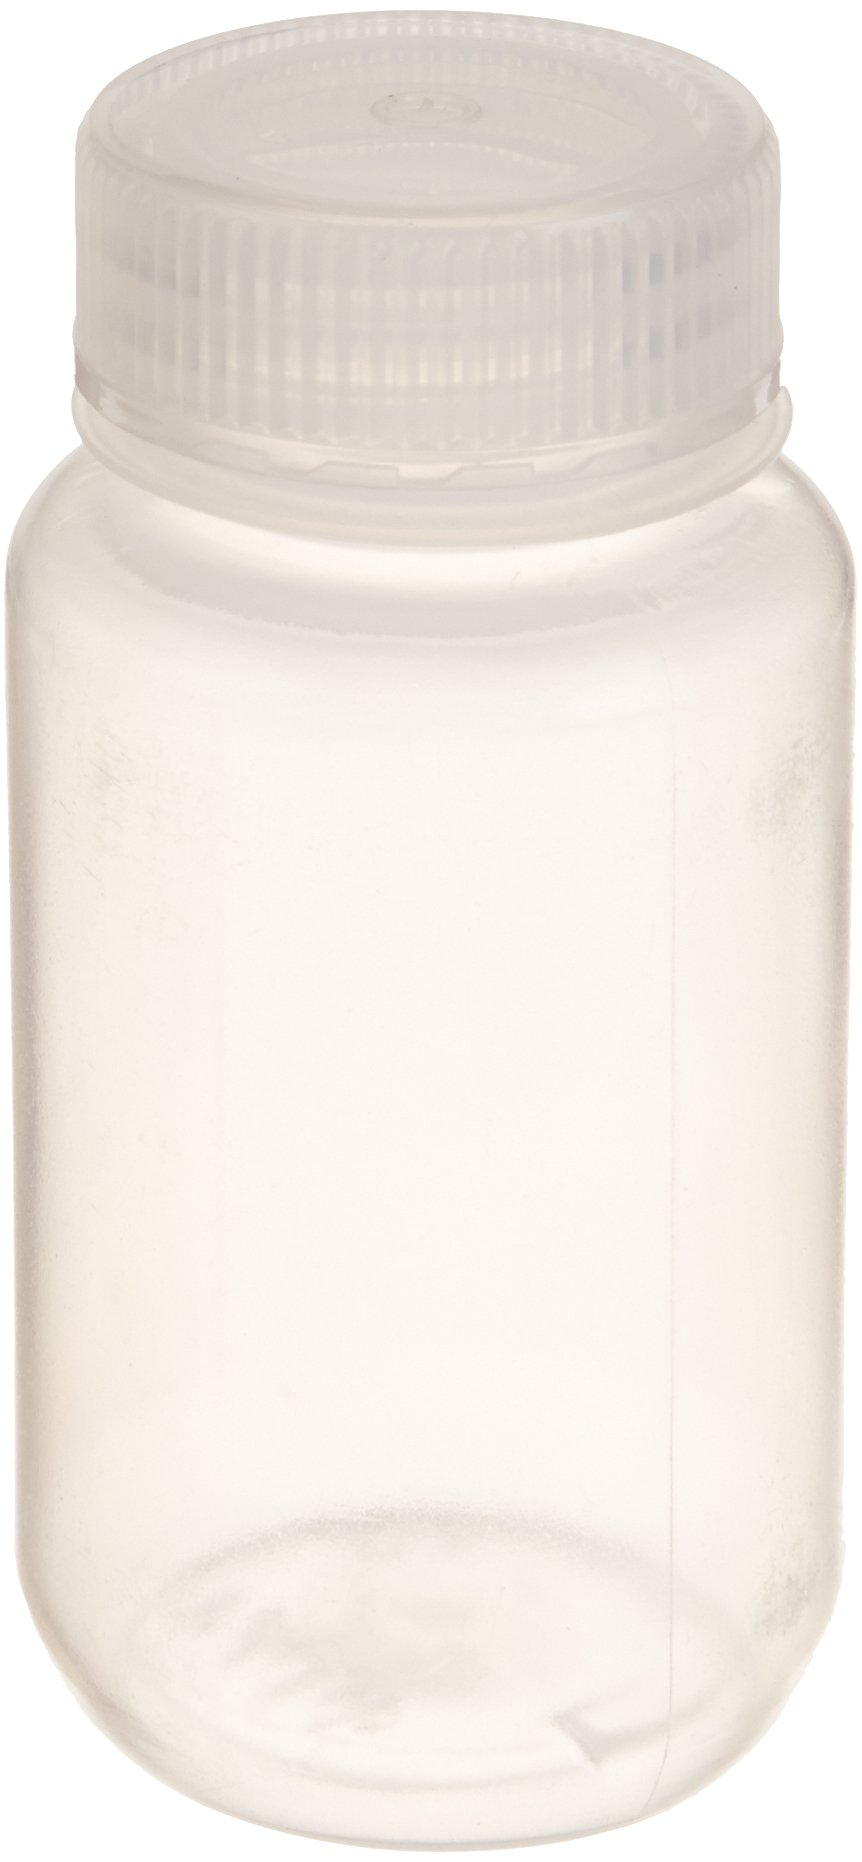 United Scientific 33307 Polypropylene Wide Mouth Reagent Bottles, 125ml Capacity (Pack of 12)